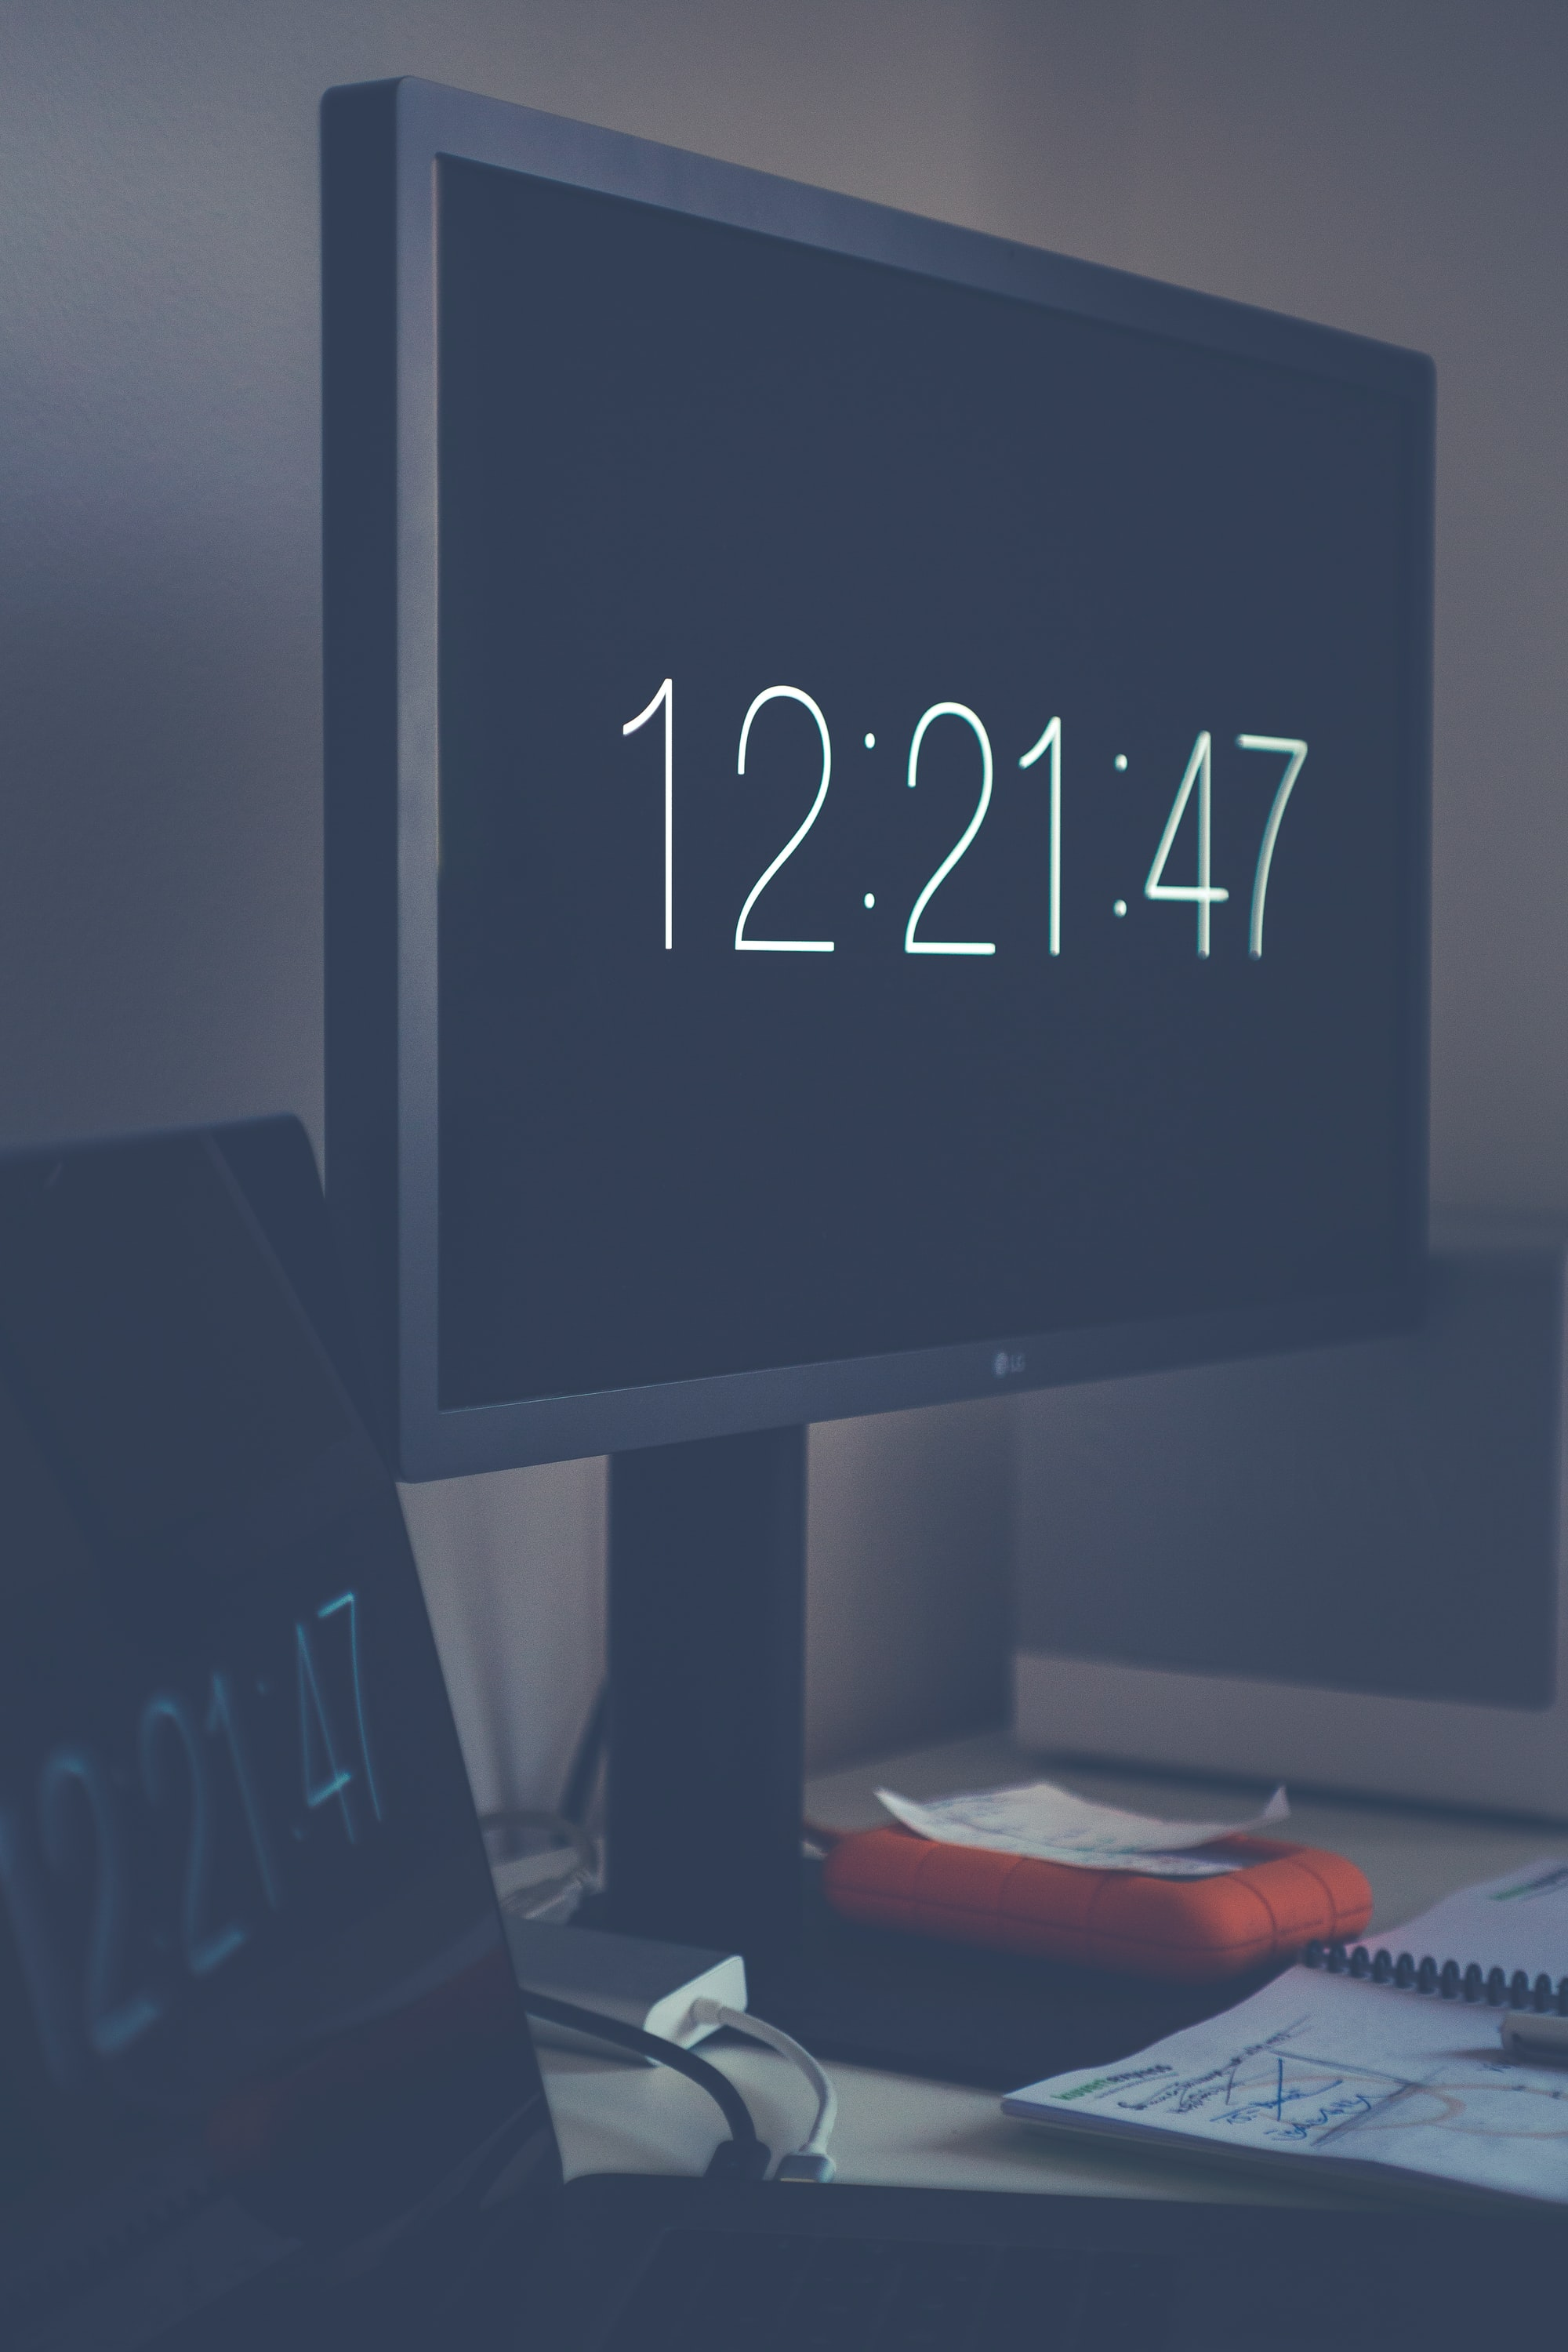 How to get the creation timestamp of an Azure resource